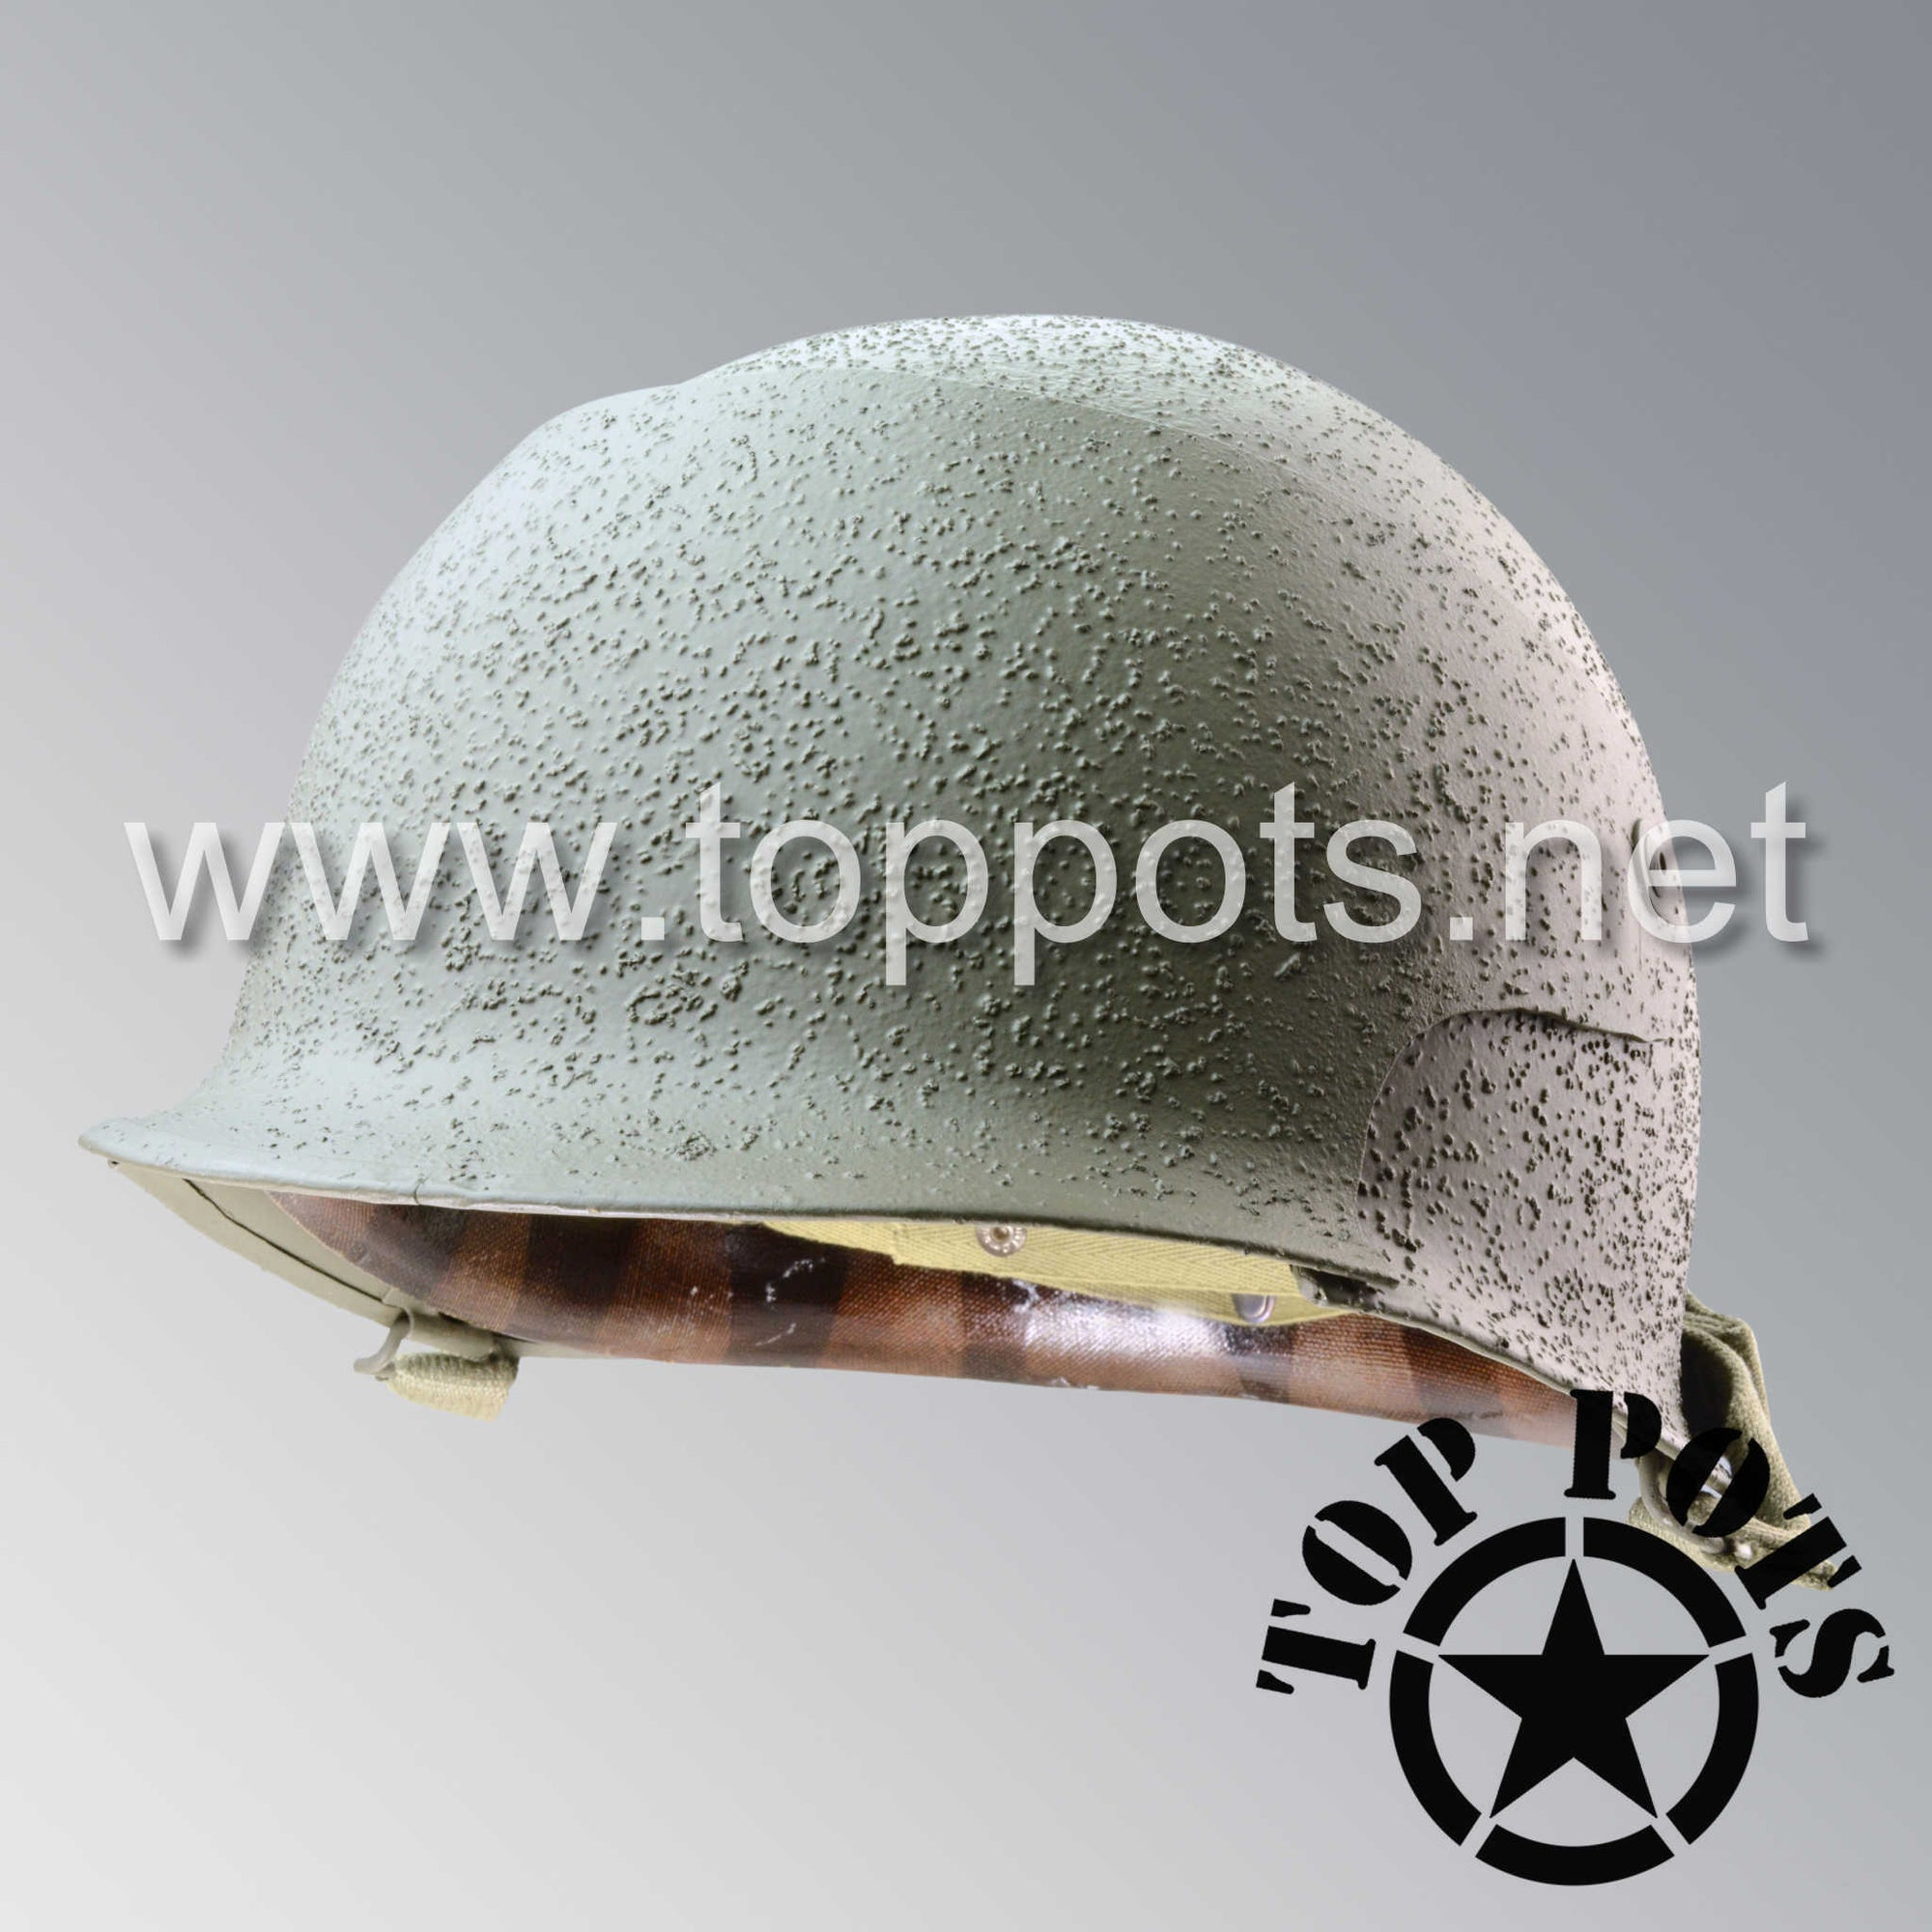 Image 1 of WWII US Army Restored Original T14 Combat Photographer Helmet and Liner 166th Signal Photographic Company